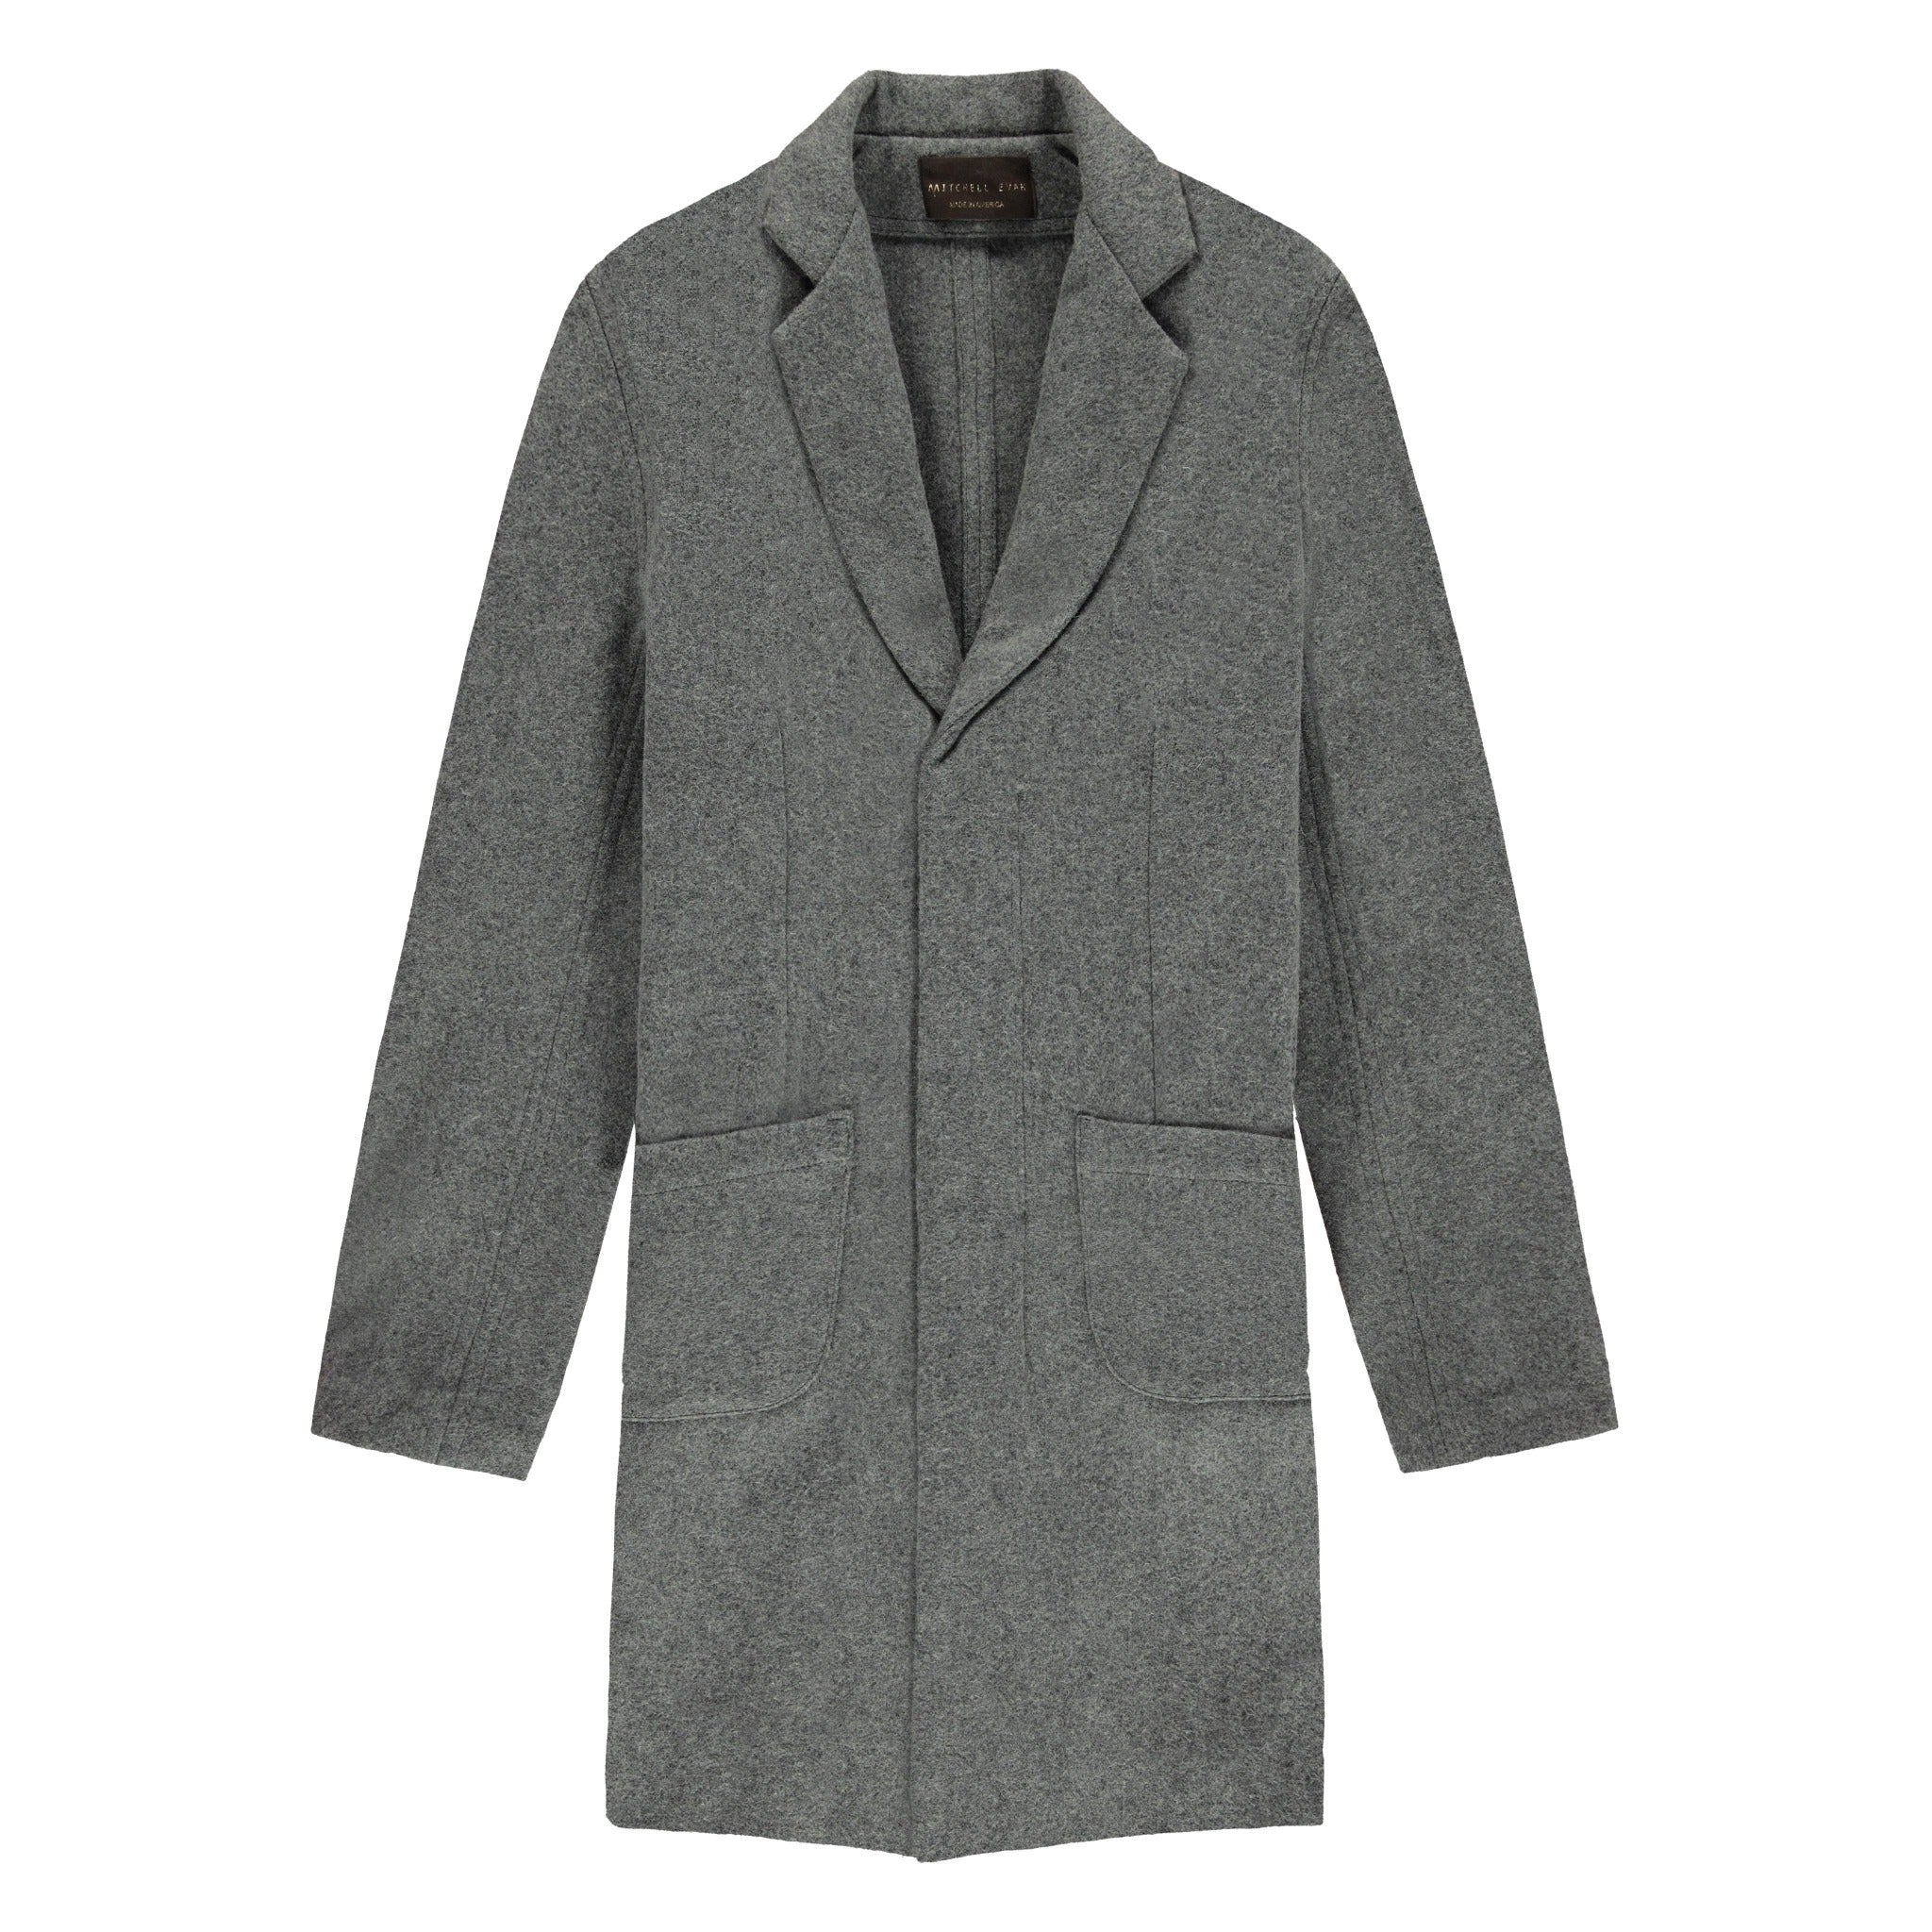 Cusack Overcoat in Heather Grey - Mitchell Evan